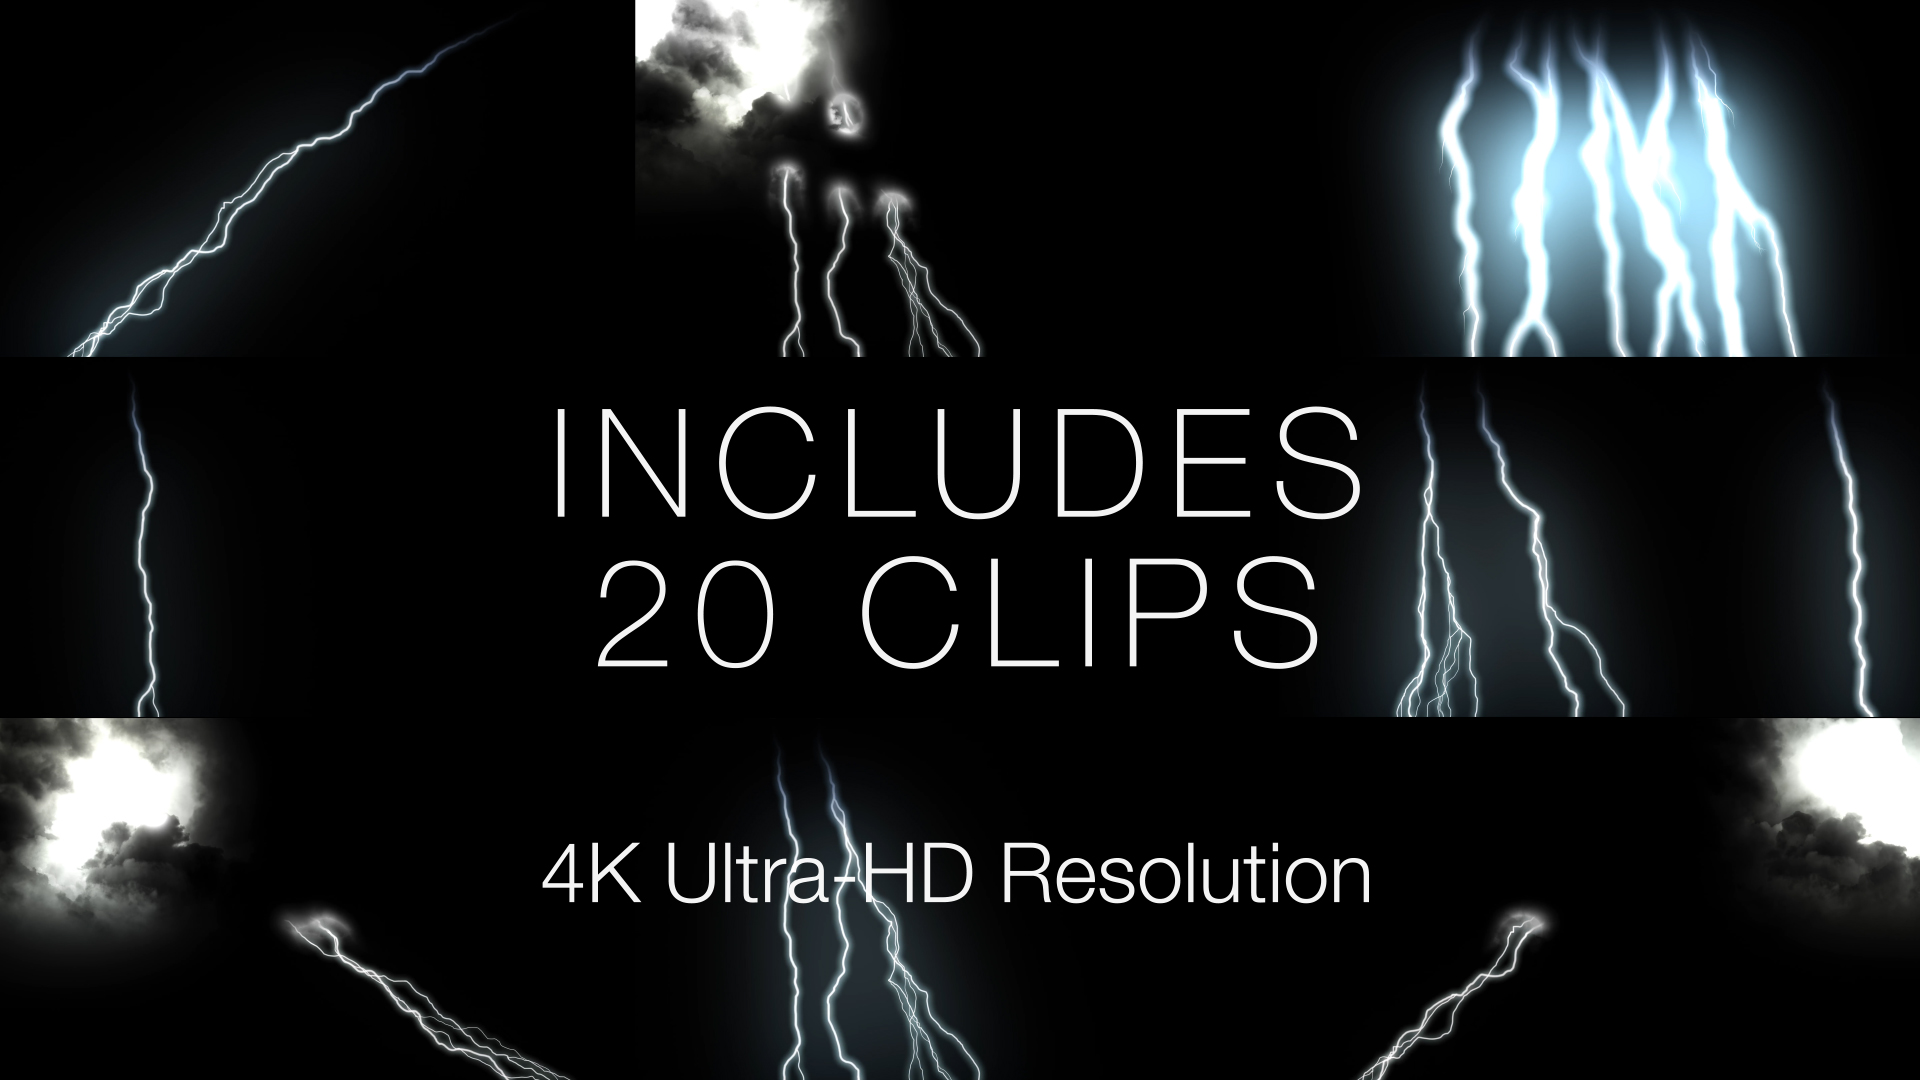 Lightning Strike Overlays Includes 20 Clips